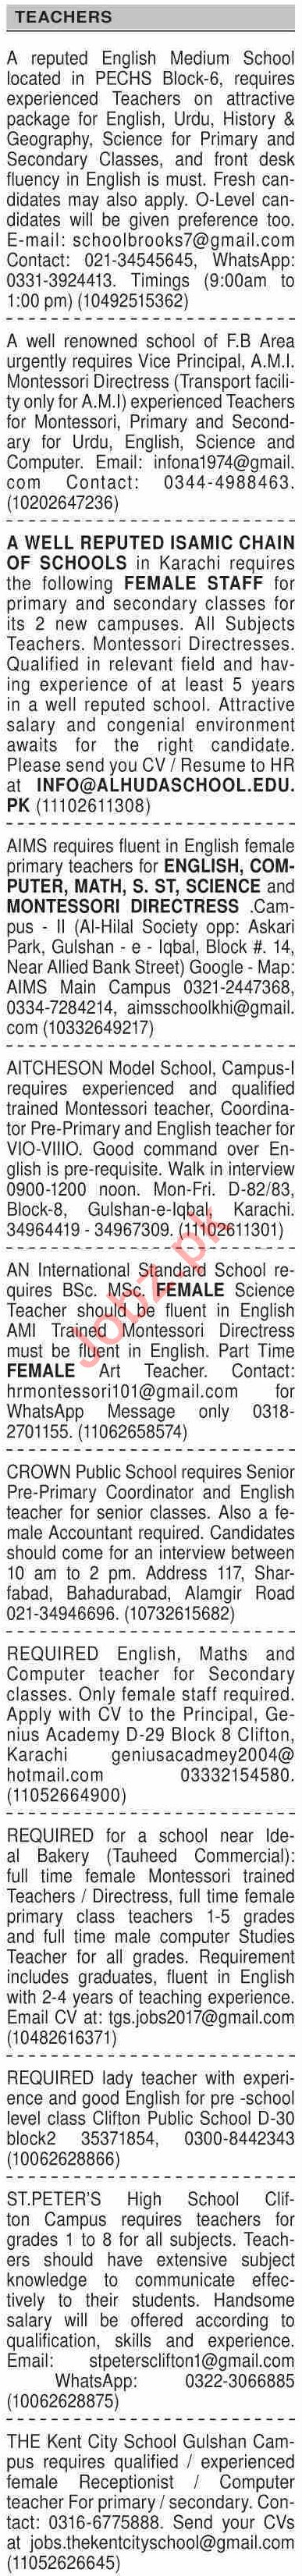 Dawn Sunday Classified Ads 4 April 2021 for Teaching Staff